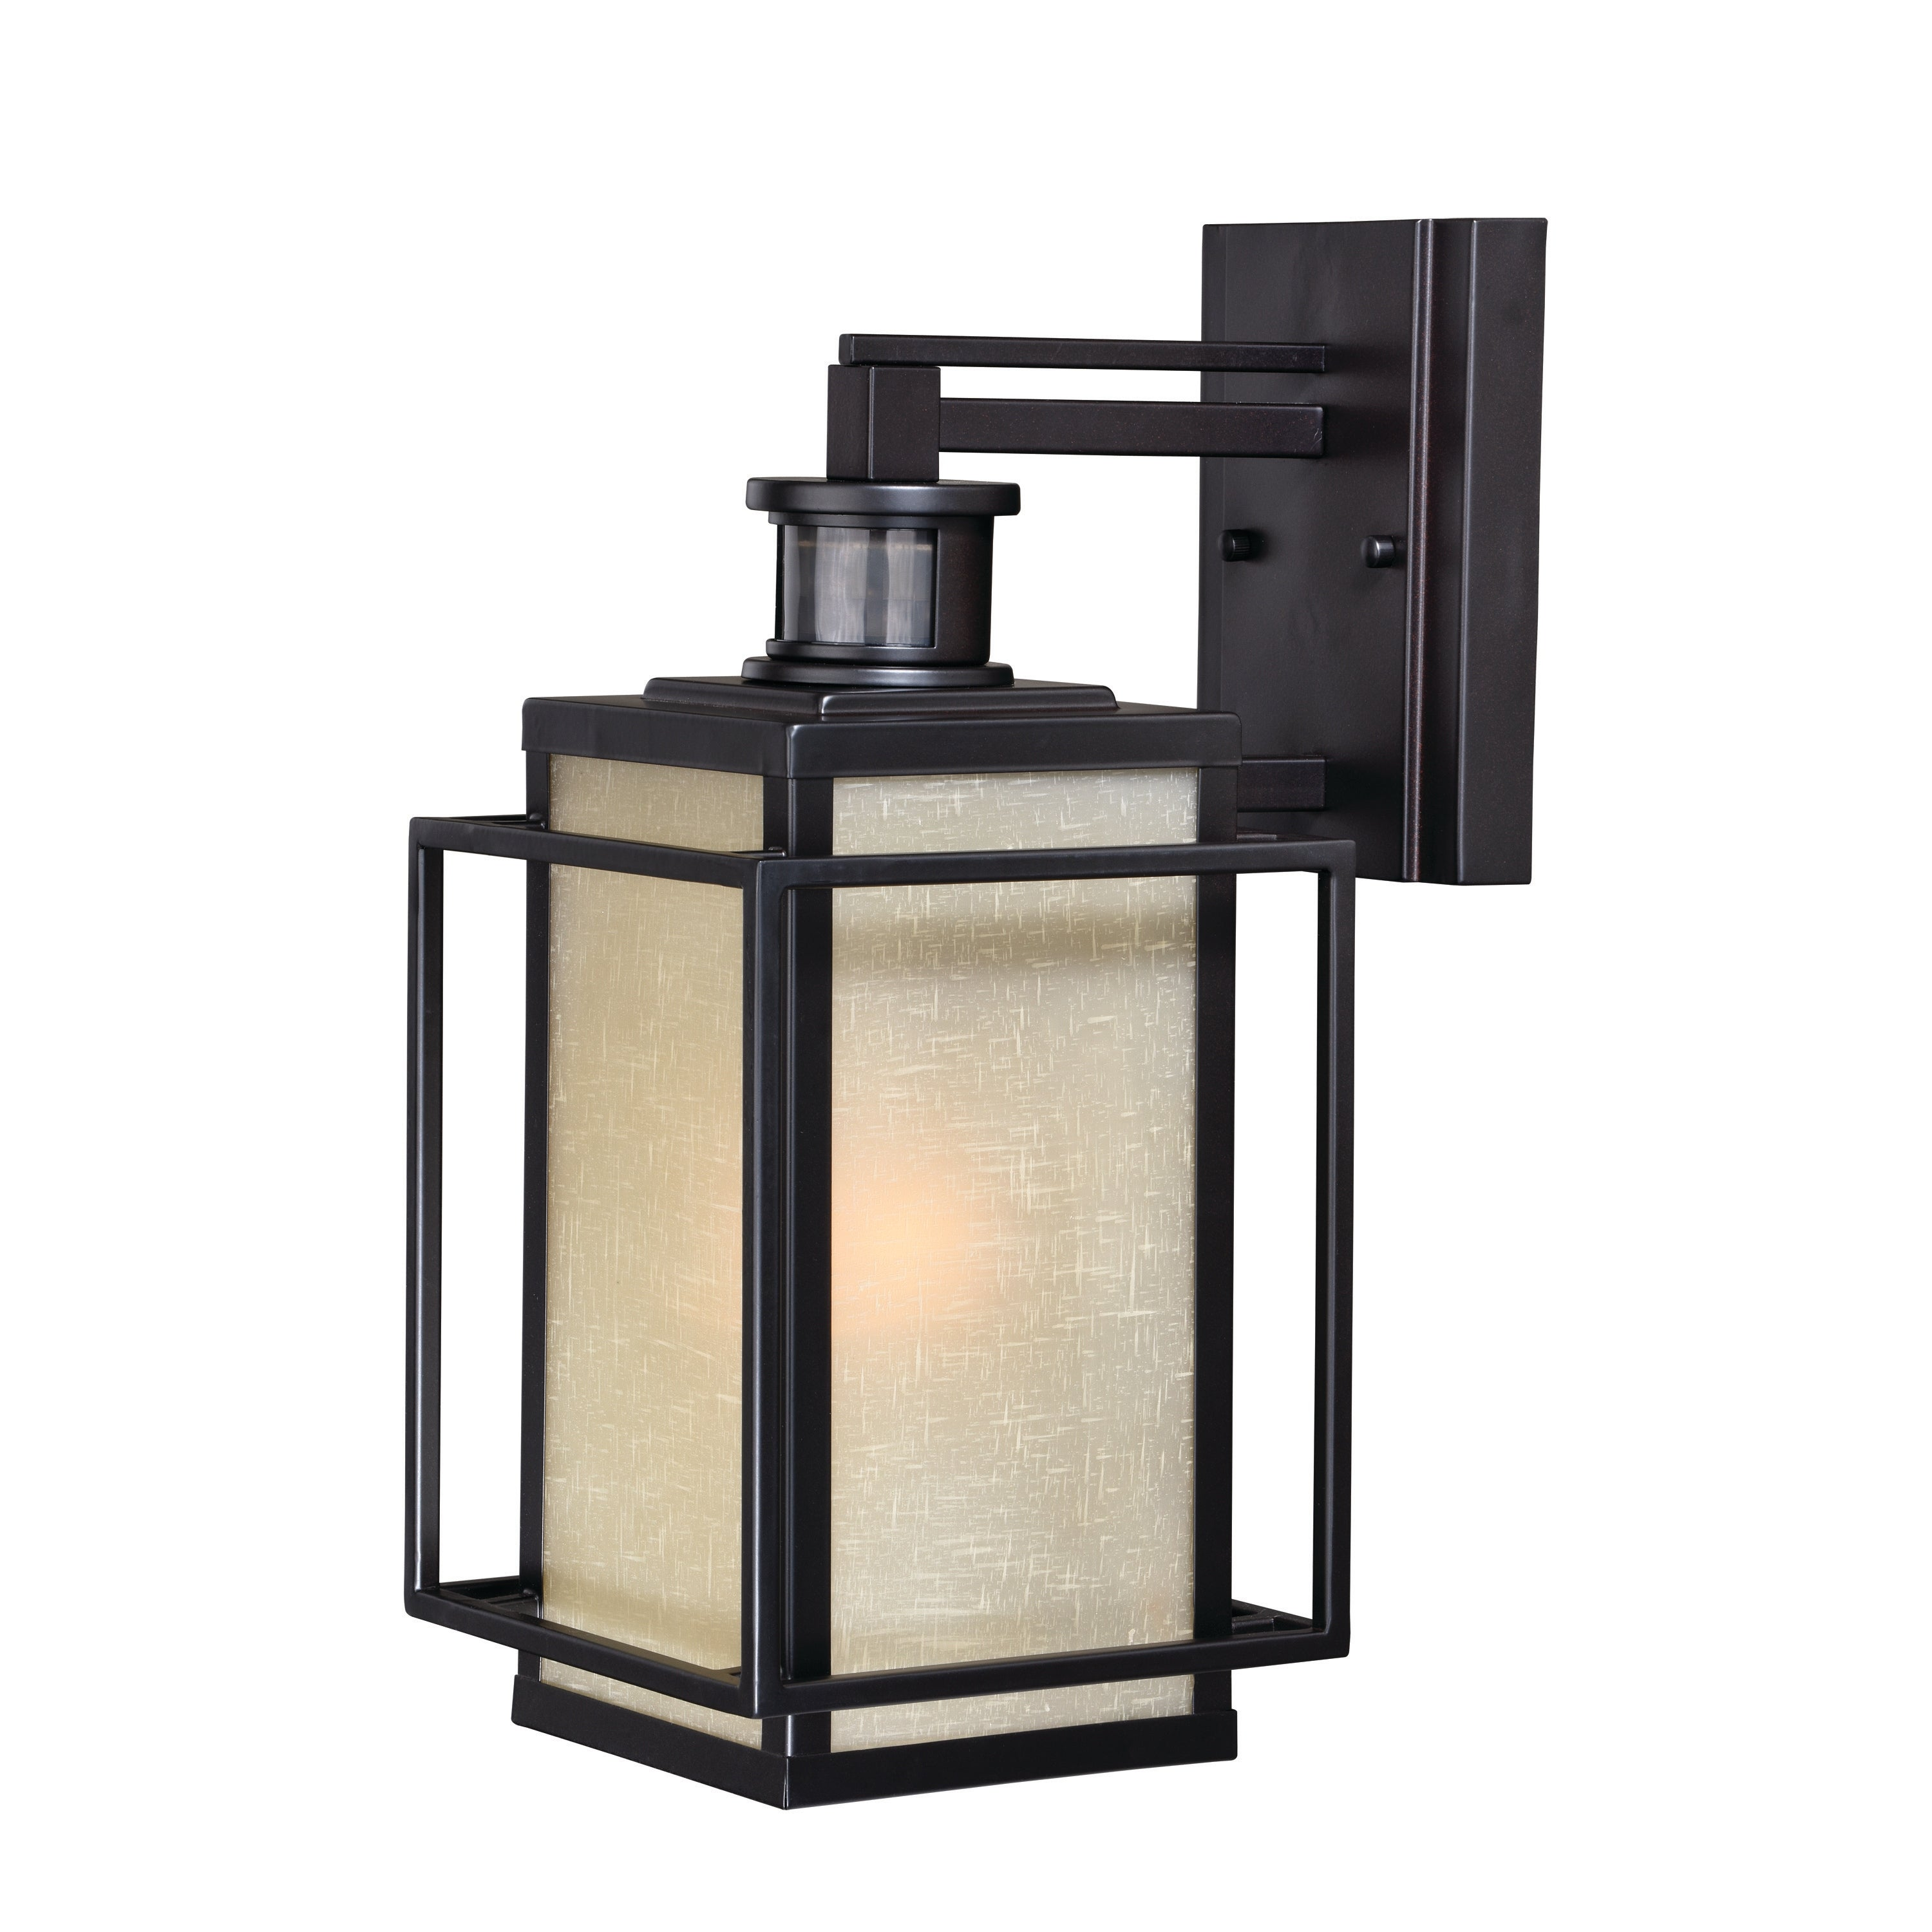 Shop Black Friday Deals On Hyde Bronze Motion Sensor Dusk To Dawn Mission Outdoor Wall Light 7 25 In W X 15 5 In H X 10 25 In D Overstock 20877012